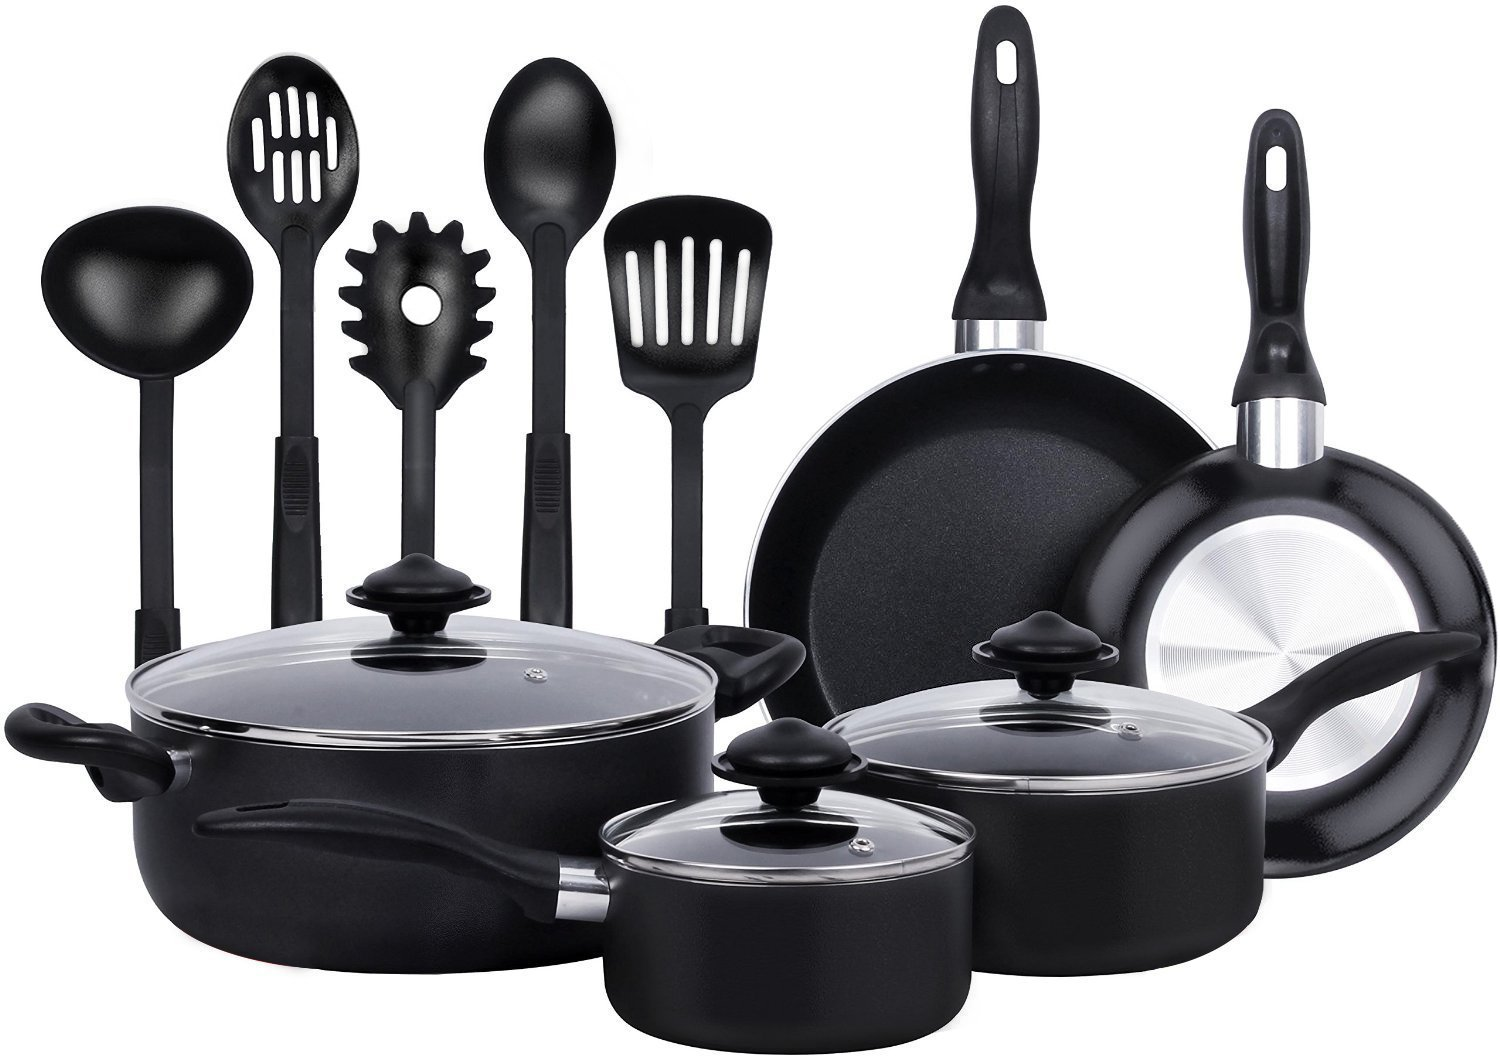 13 Pieces Kitchen Cookware Set - Black, Highly Durable, Even Heat Distribution, Double Nonstick Coating - Multipurpose Use for Home, Kitchen or Restaurant - by Utopia Kitchen UK0056